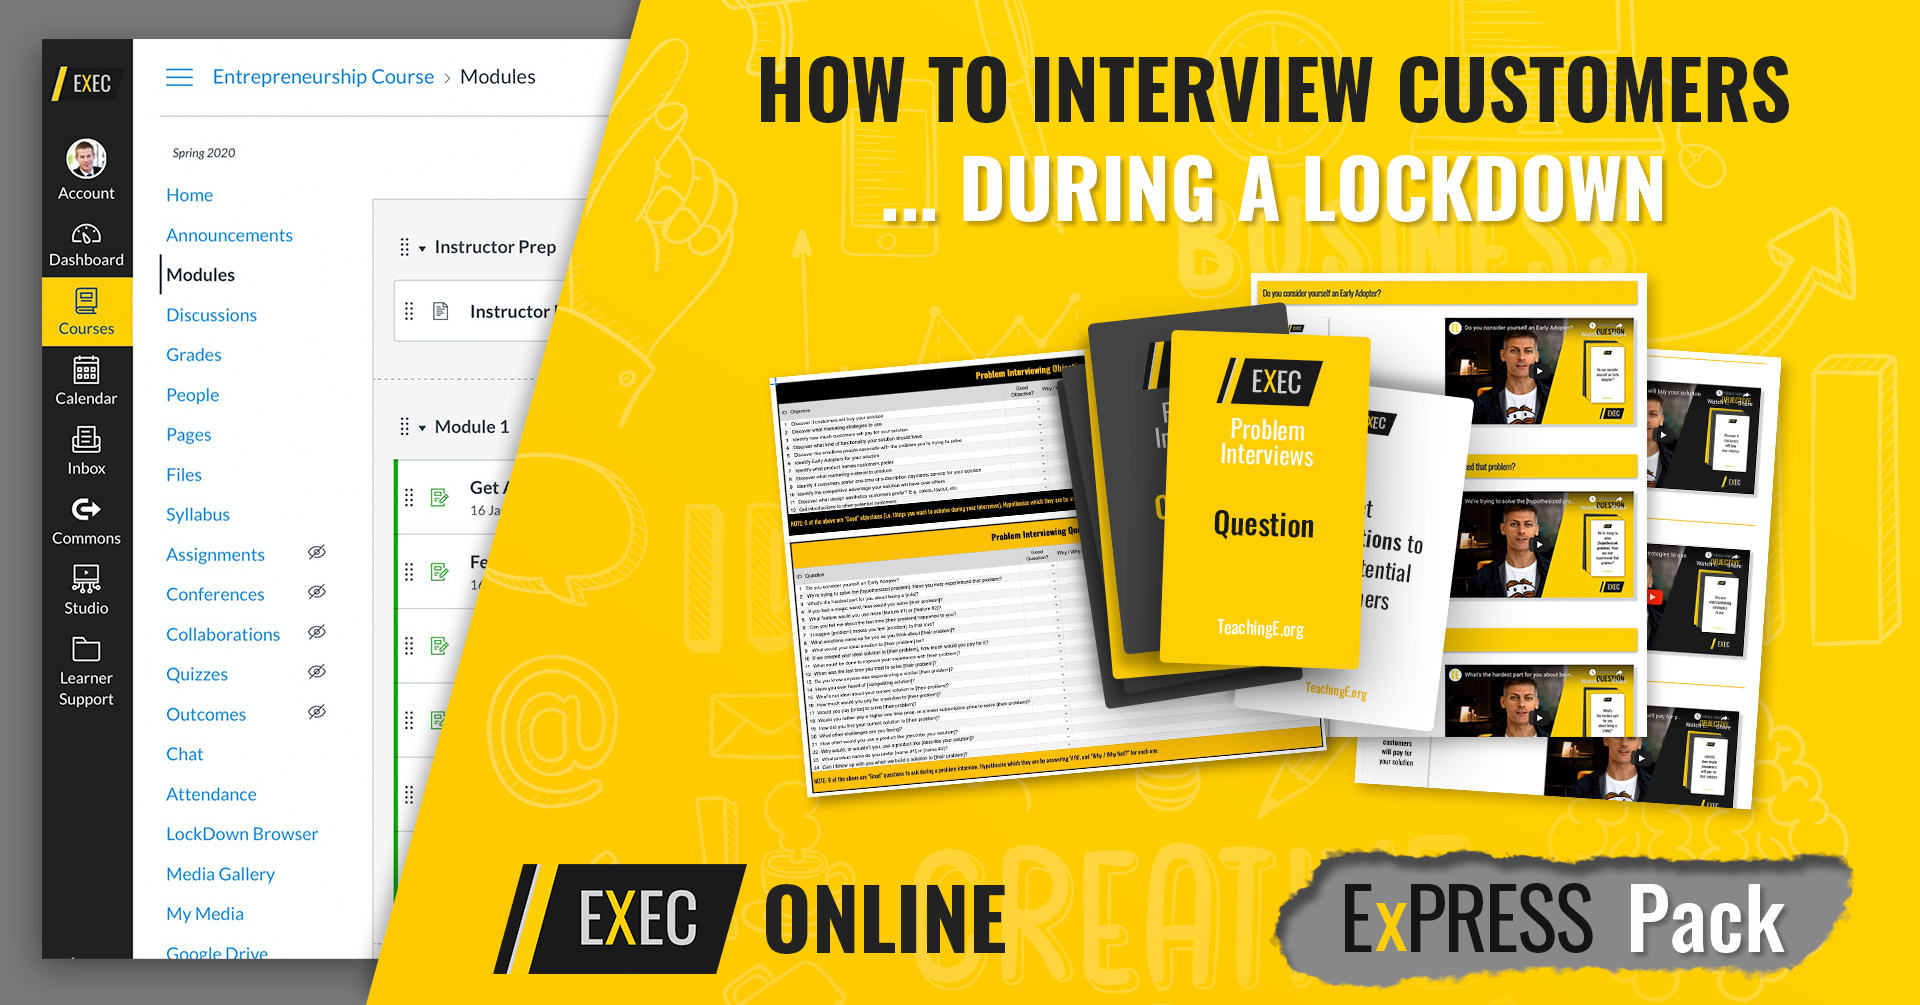 Express Pack Entrepreneurship Lessons Online: Interviewing Customers